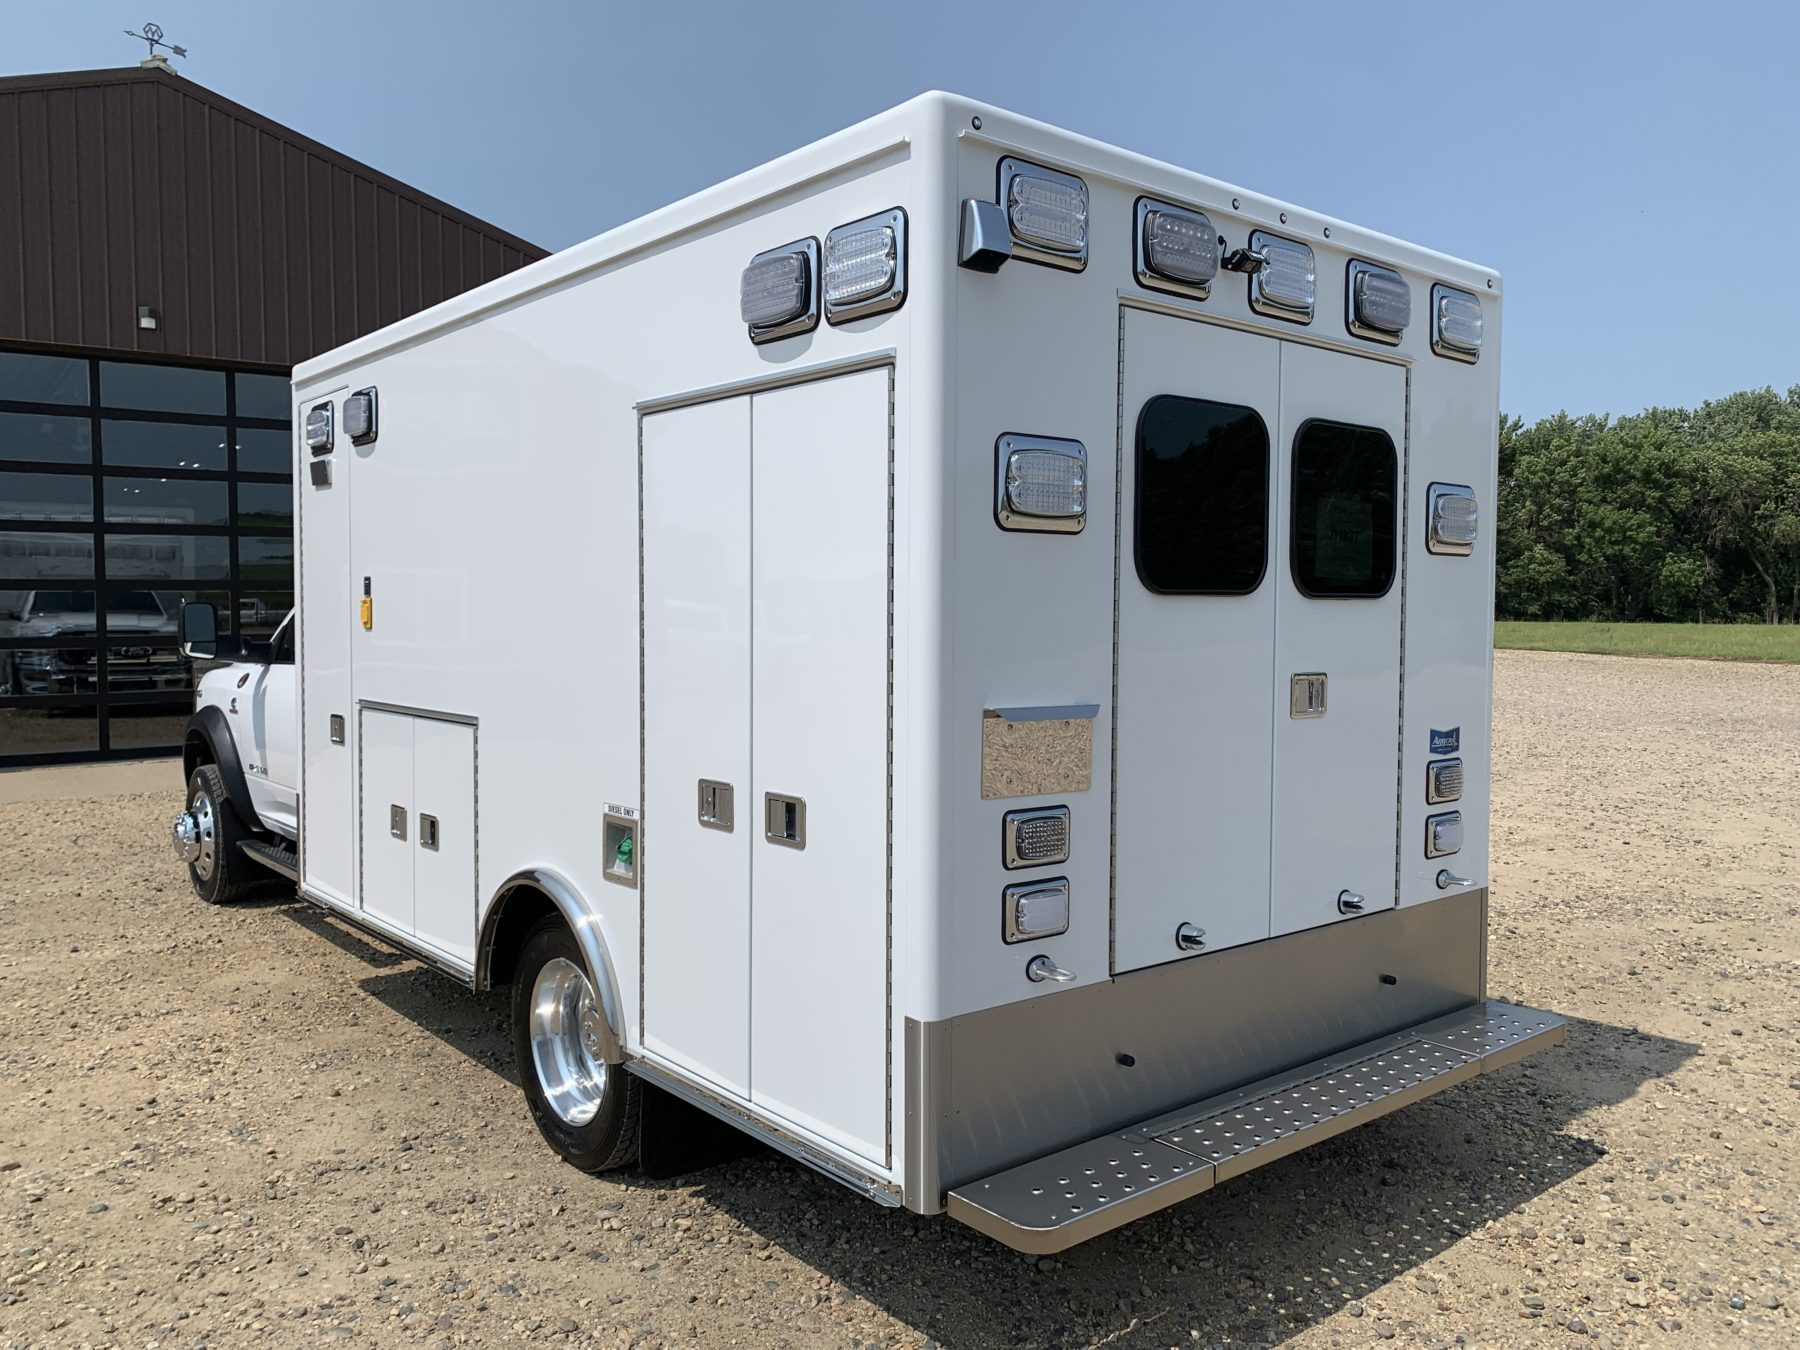 2021 Ram 4500 4x4 Heavy Duty Ambulance For Sale – Picture 8